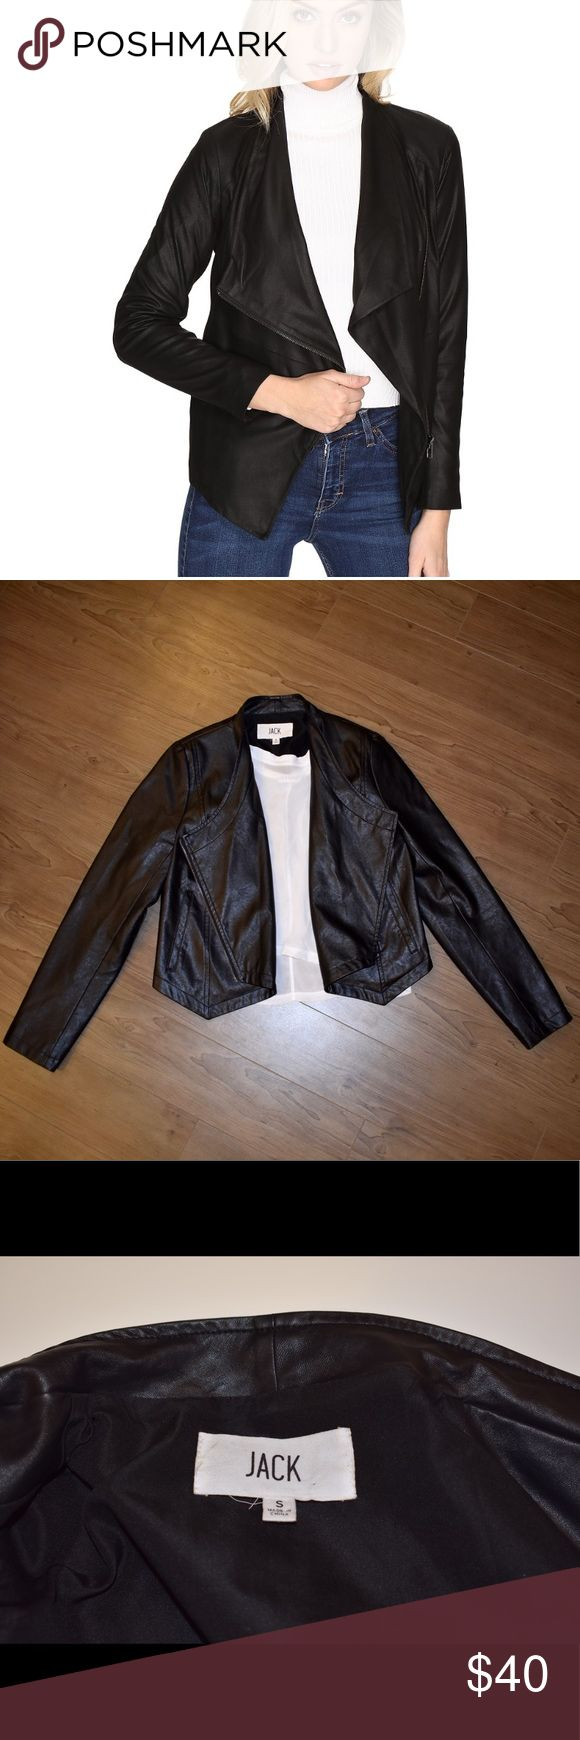 BB Dakota Jack Vegan Leather Jacket In perfect condition faux leather jacket by BB Dakota Jack. Originally retailed for $75. Has a zipper in front and elastic in the back. This is a size small but fits me comfortably and I normally wear a medium. It can definitely fit a variety of sizes. BB Dakota Jackets & Coats